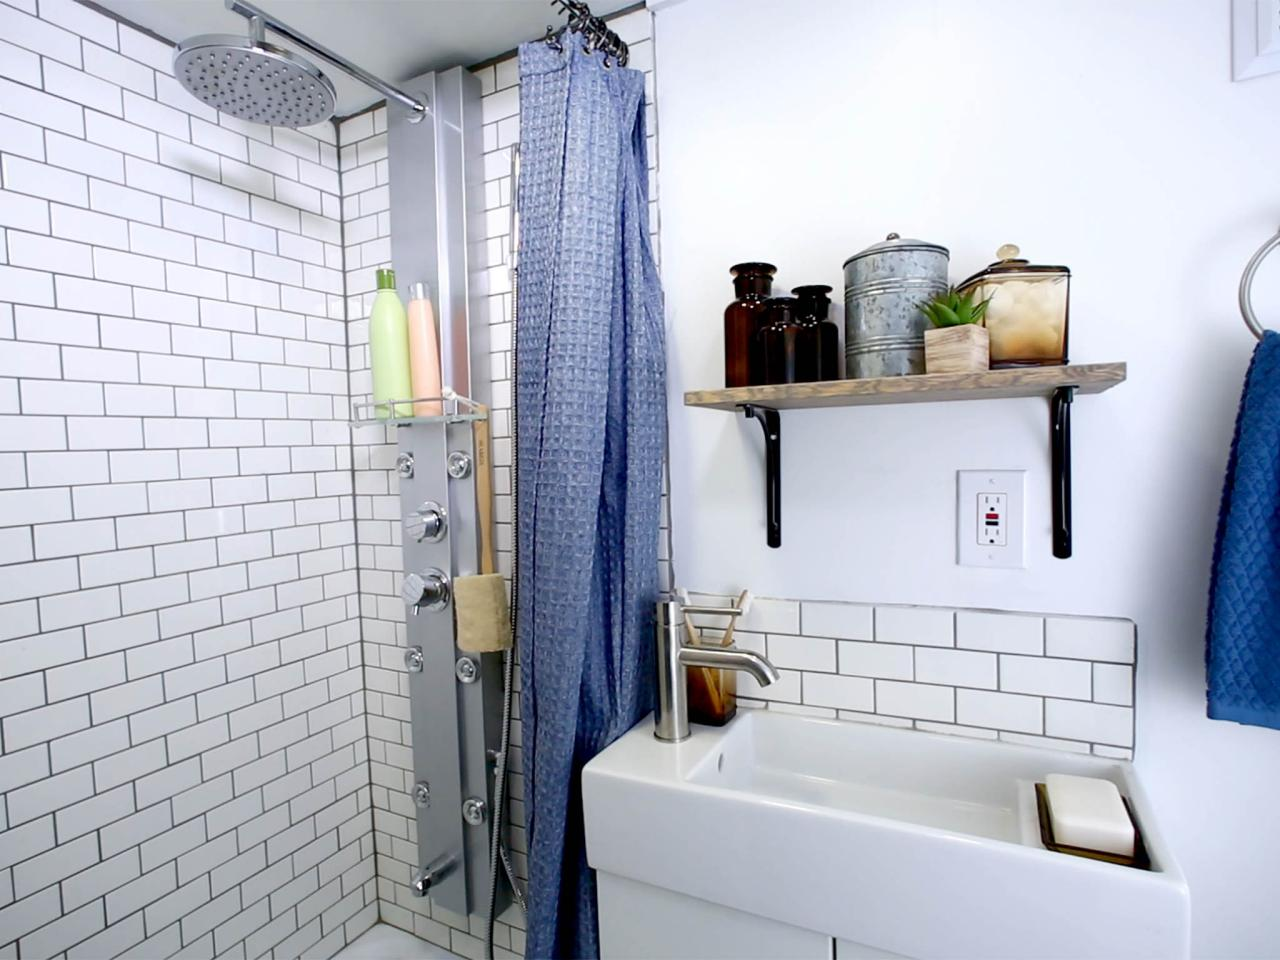 8 Tiny House Bathrooms Packed With Style | HGTV\'s Decorating ...